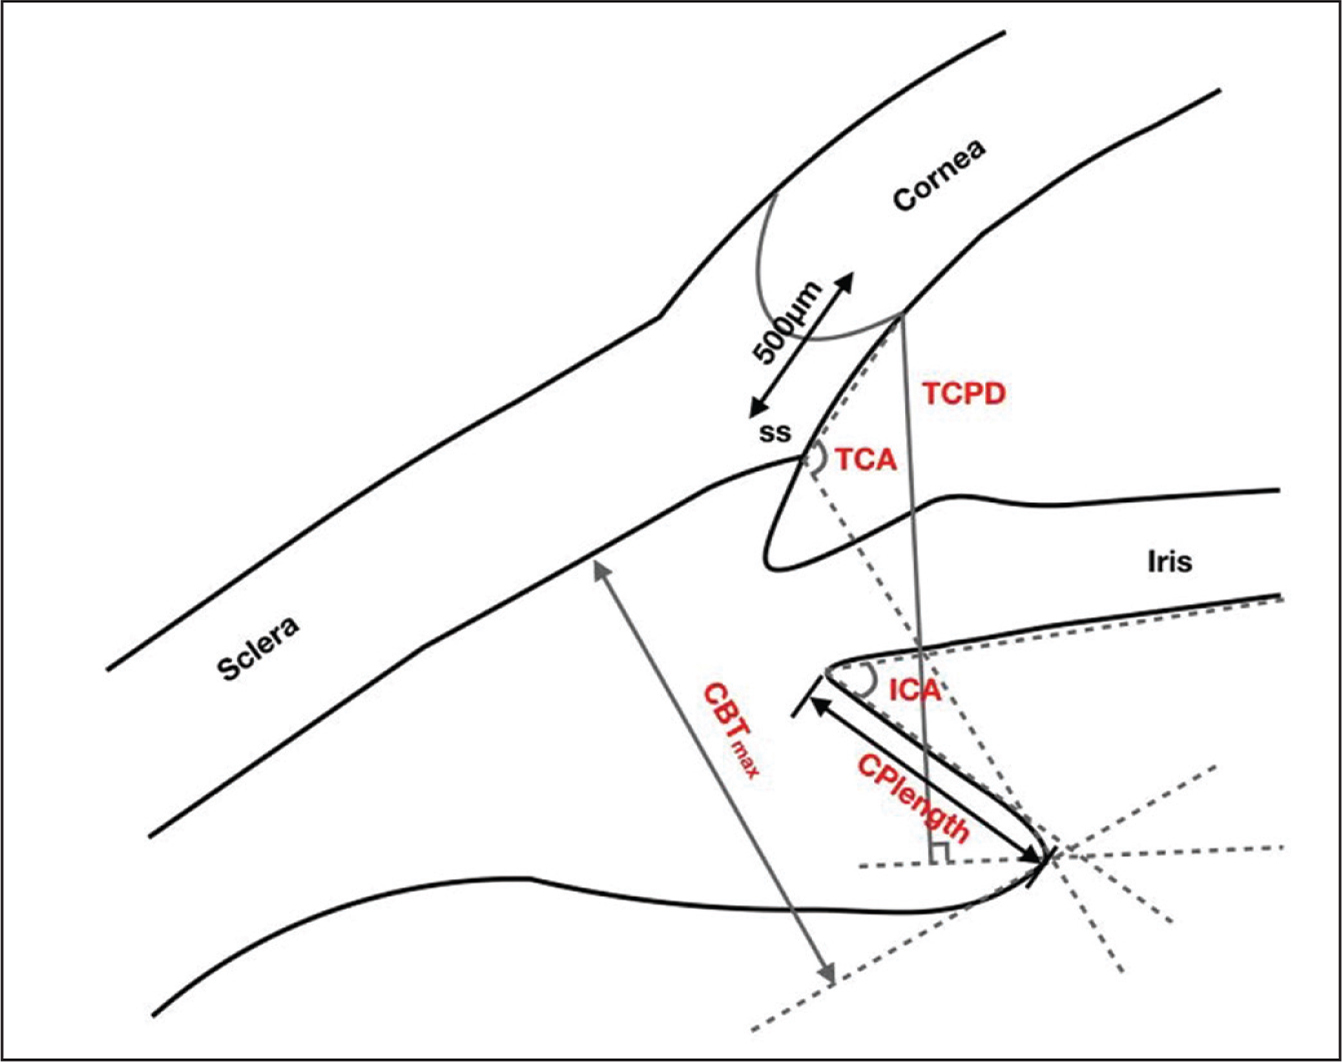 Diagrammatic representation of the ultrasound biomicroscopy measurements of ciliary body parameters. Iris-ciliary angle (ICA) is the angle between the posterior iris surface and the anterior surface of the ciliary body; trabecular-ciliary angle (TCA) is measured with the scleral spur as the apex and the corneal endothelium and the anterior surface of the ciliary body as the arms of the angle; trabecular ciliary process distance (TCPD) is defined as the length of the line extending from the corneal endothelium 500 μm from the scleral spur perpendicularly to the line passing through the innermost point of ciliary body and parallel to the iris; maximum ciliary body thickness (CBTmax) is the distance from the innermost point of the ciliary body to the inner wall of the sclera or its extended line; ciliary process length (CPlength) is the distance from the innermost point of the ciliary body to the intersection point of the iris and ciliary body.